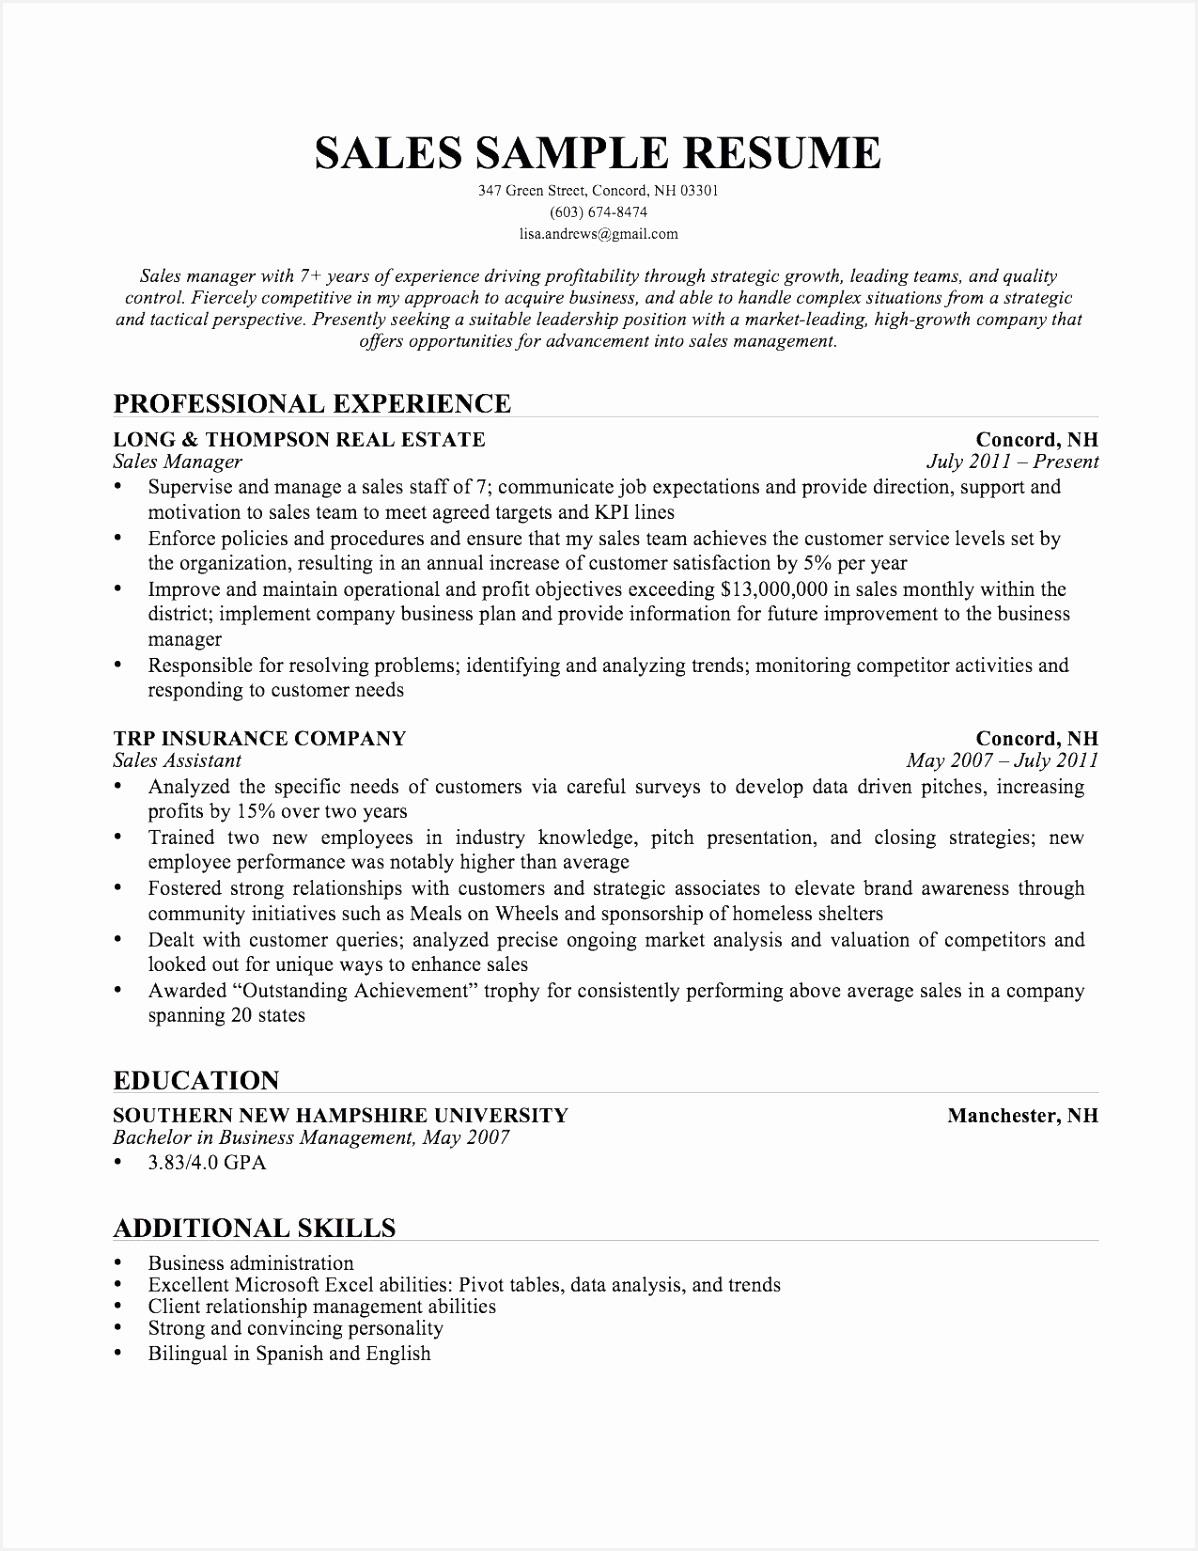 Cook Resume Objective Examples G7z5v Awesome Resume for Chef Cook Chef Resume Samples Awesome Retail Resume 0d Of 7 Cook Resume Objective Examples